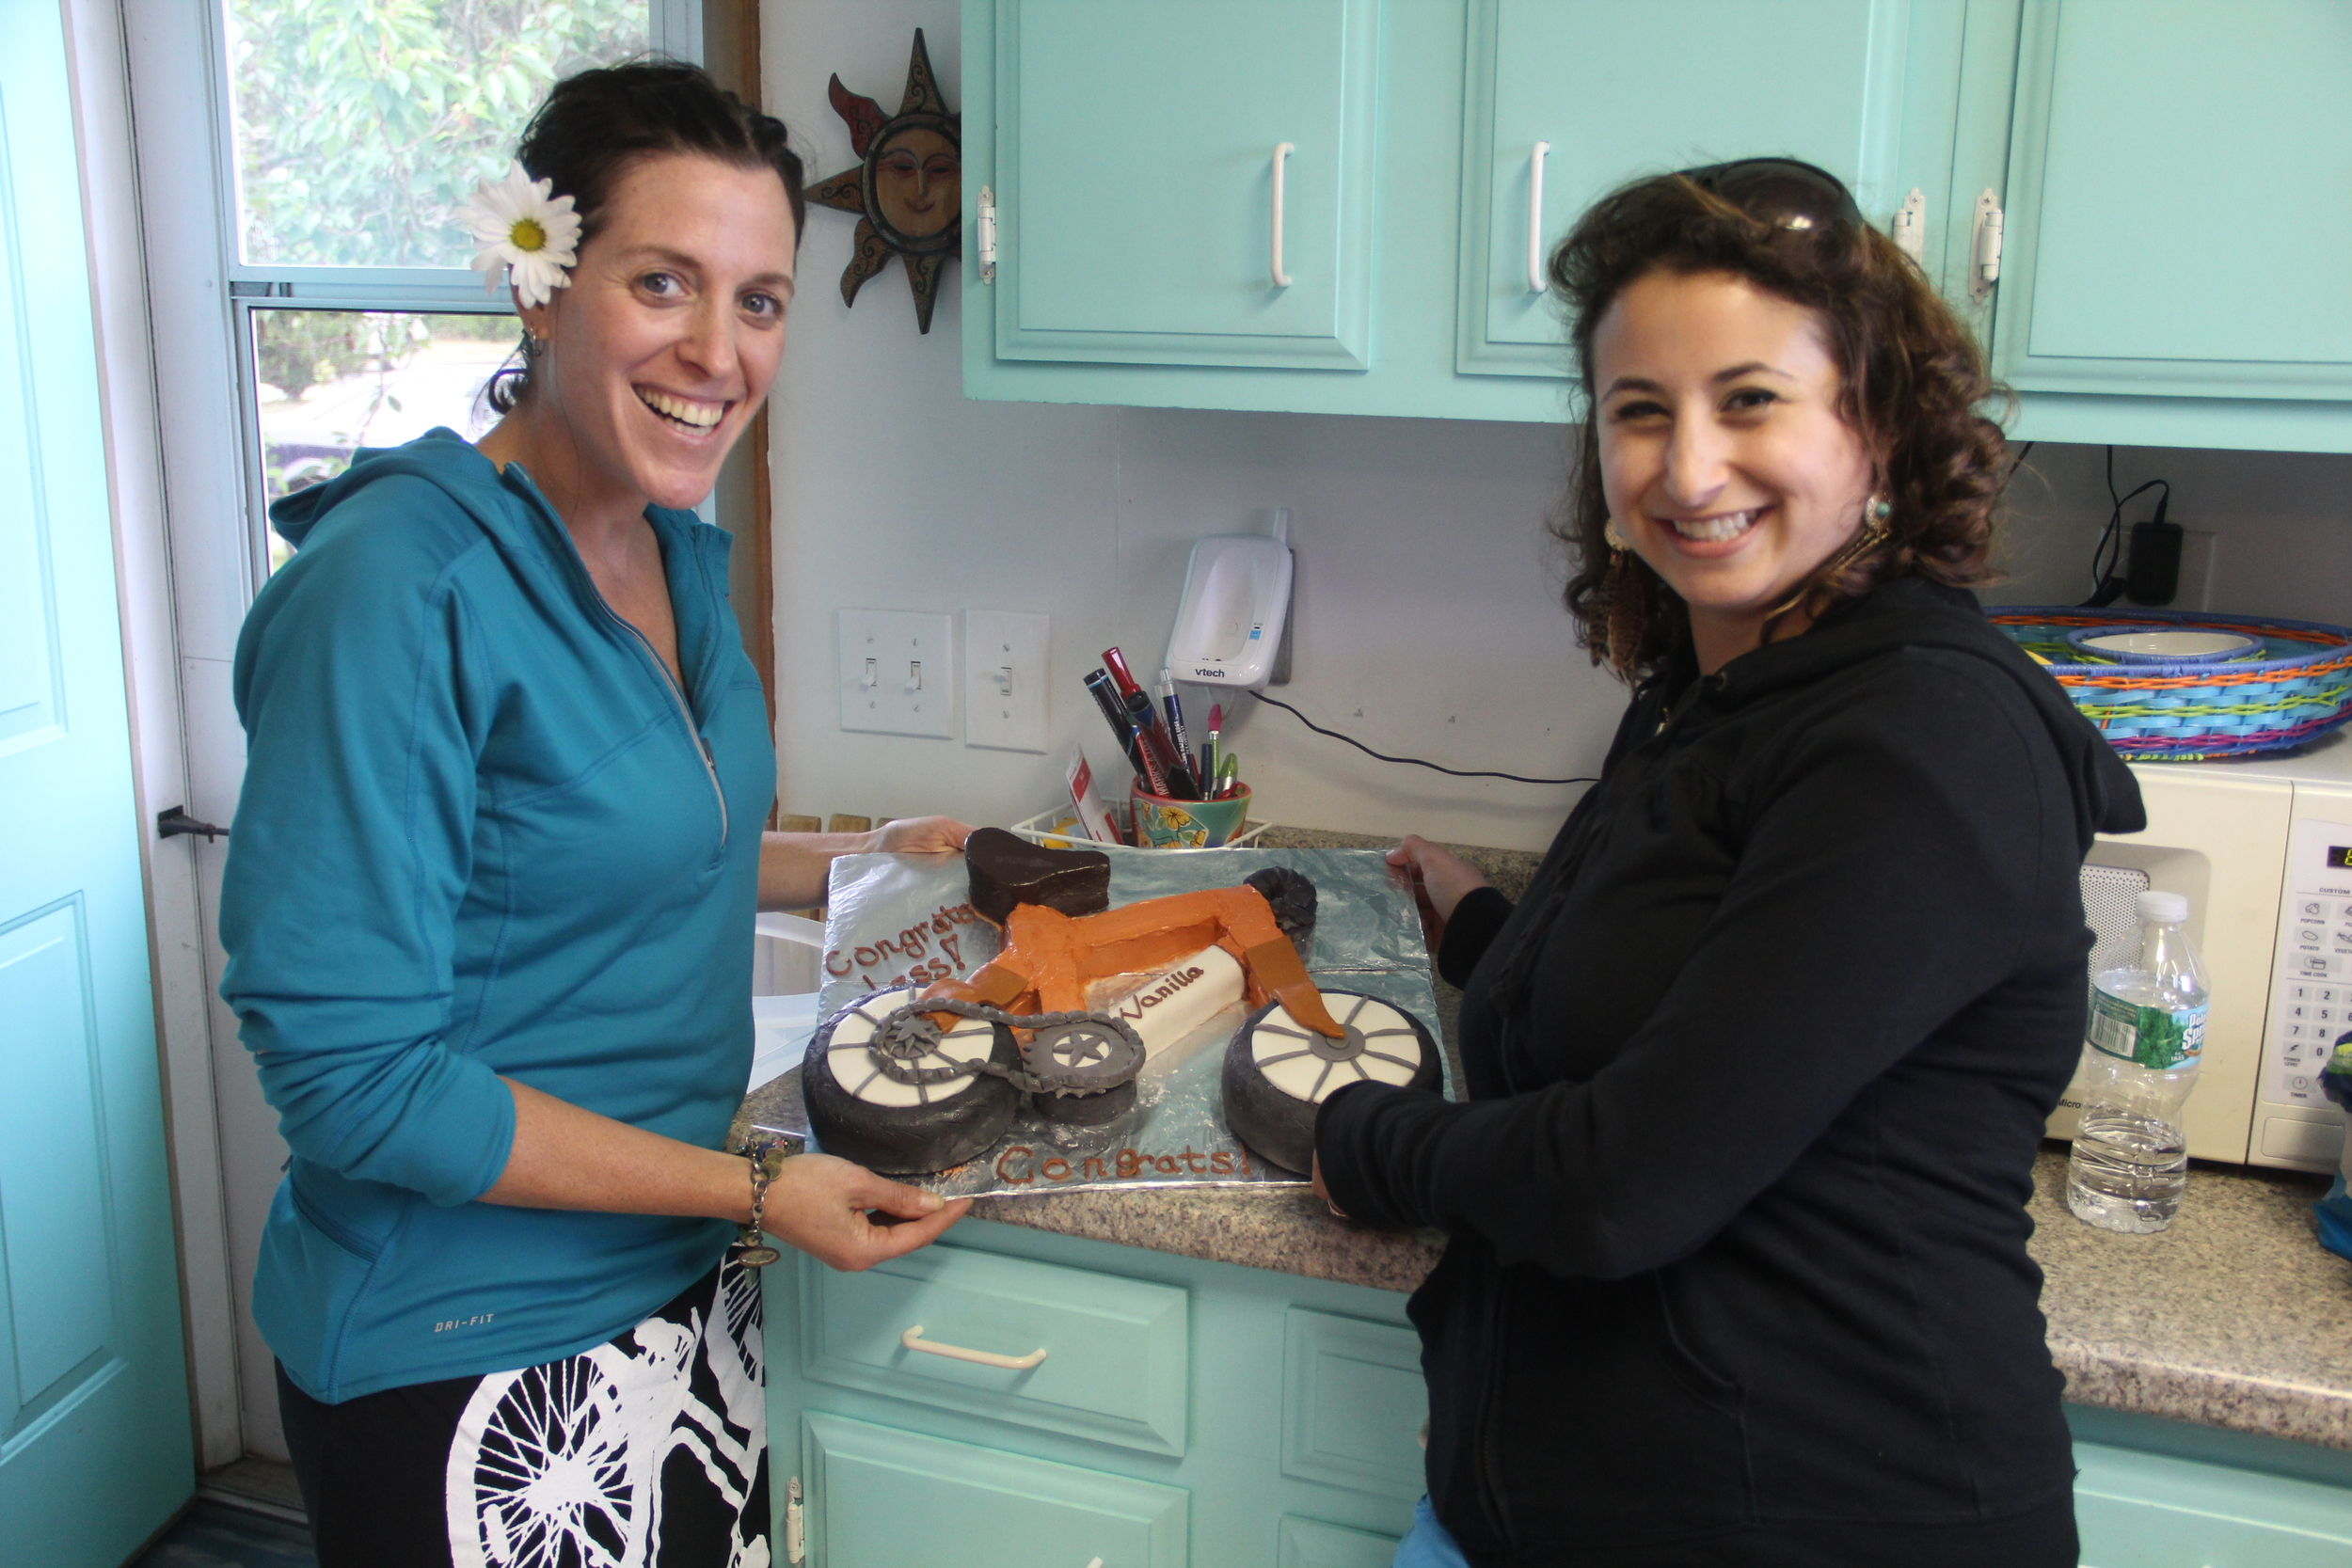 My cousin Leslie and I. And, her incredibly creative Vanilla Bicycle cake that took her two days to make! And it was YUMMY! Because of it, I choose cake over the ice cream this week... Thanks Leslie!!